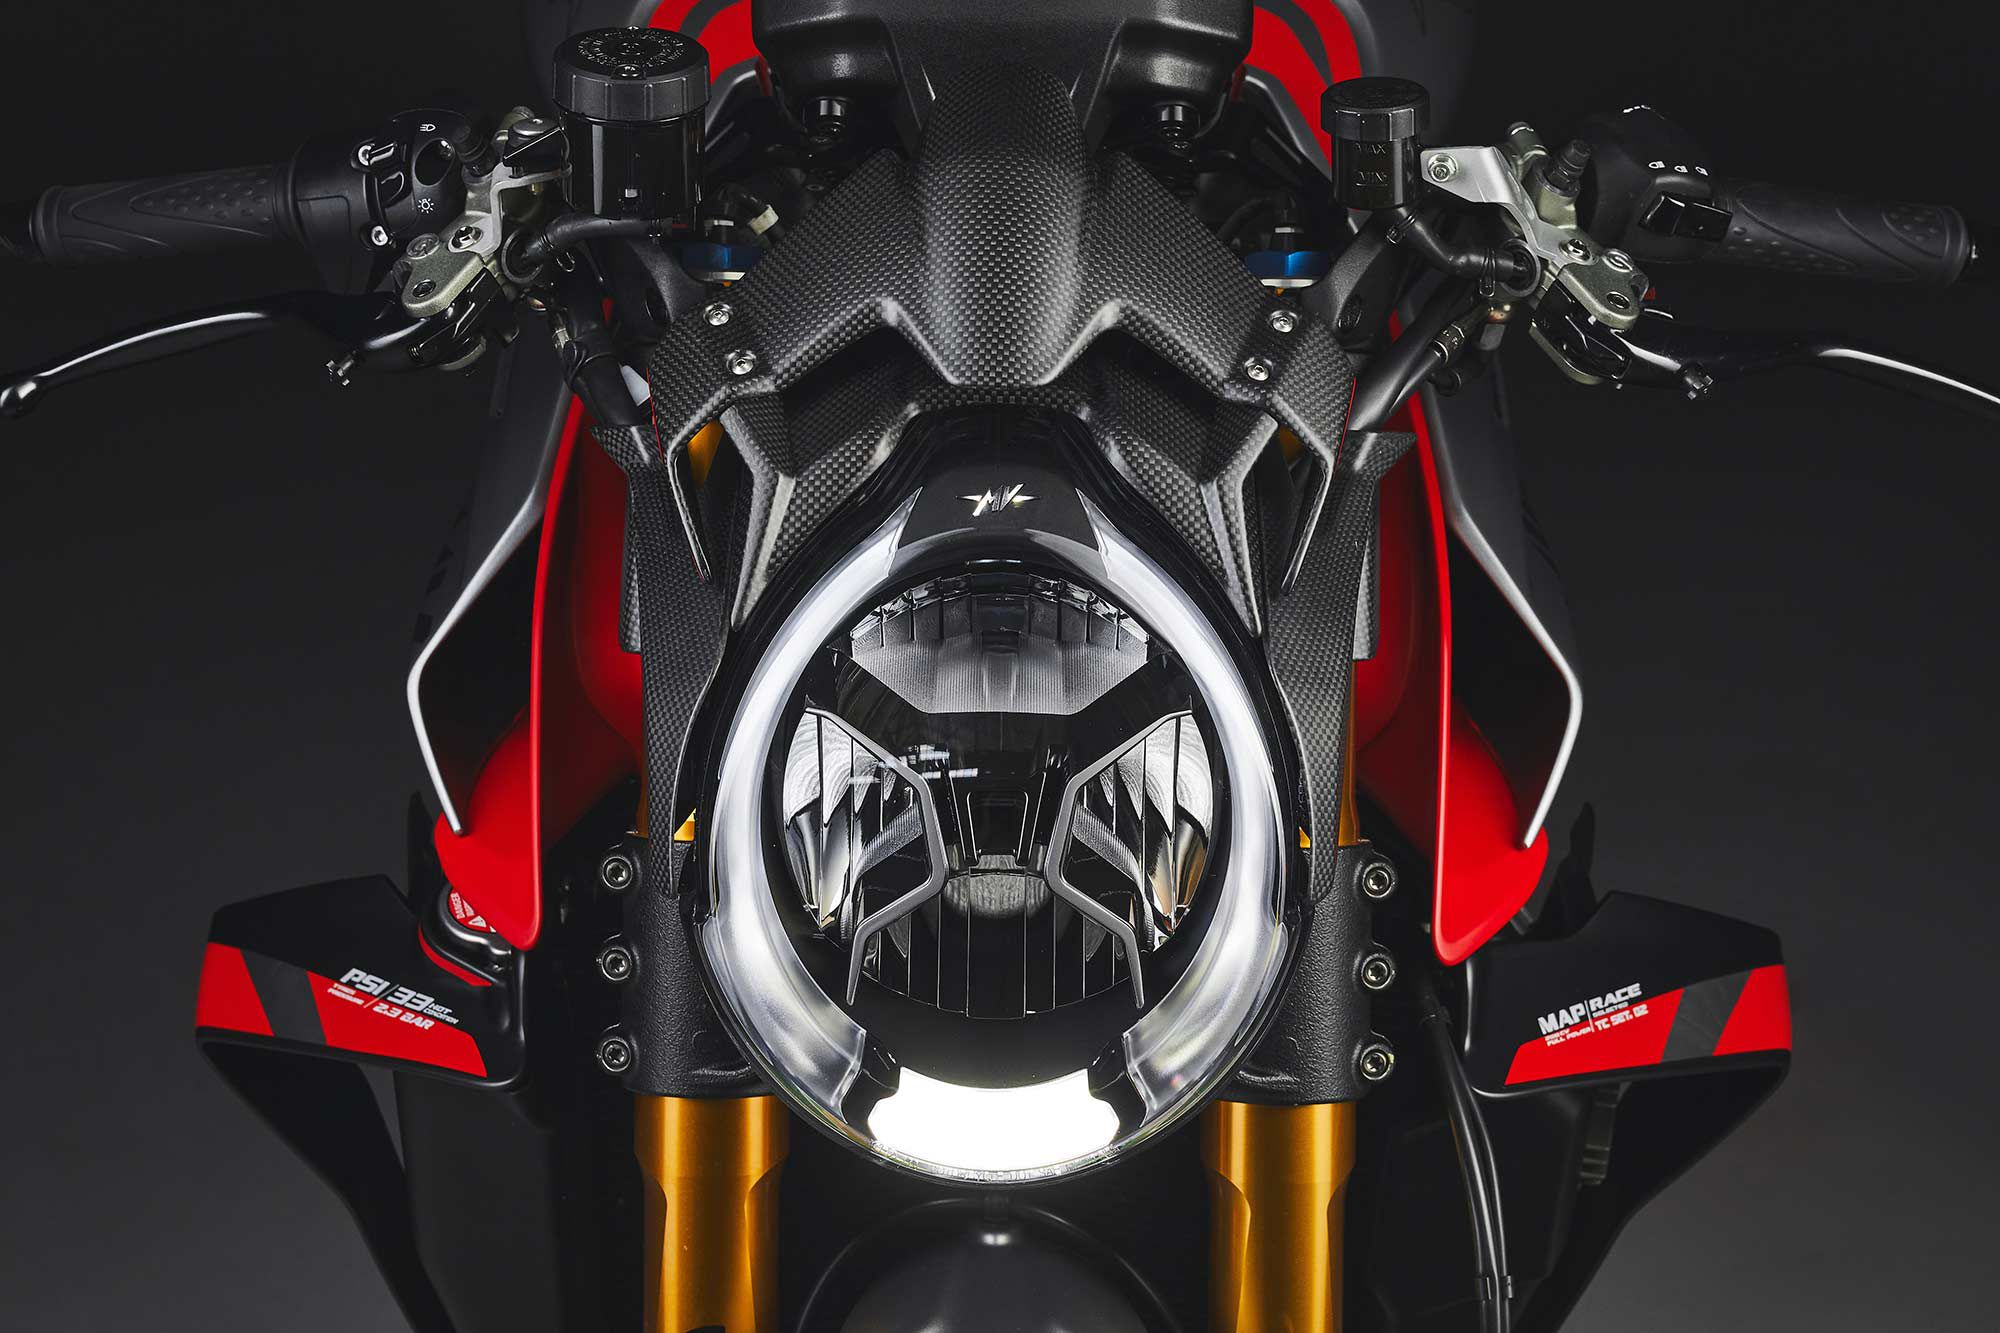 The subtle carbon fiber spoiler/cowl above and around the headlight is the only bodywork change to the new MV Agusta Brutale 1000 RR Nurburgring. While designed to increase downforce, it also sets the bike apart as a limited edition.